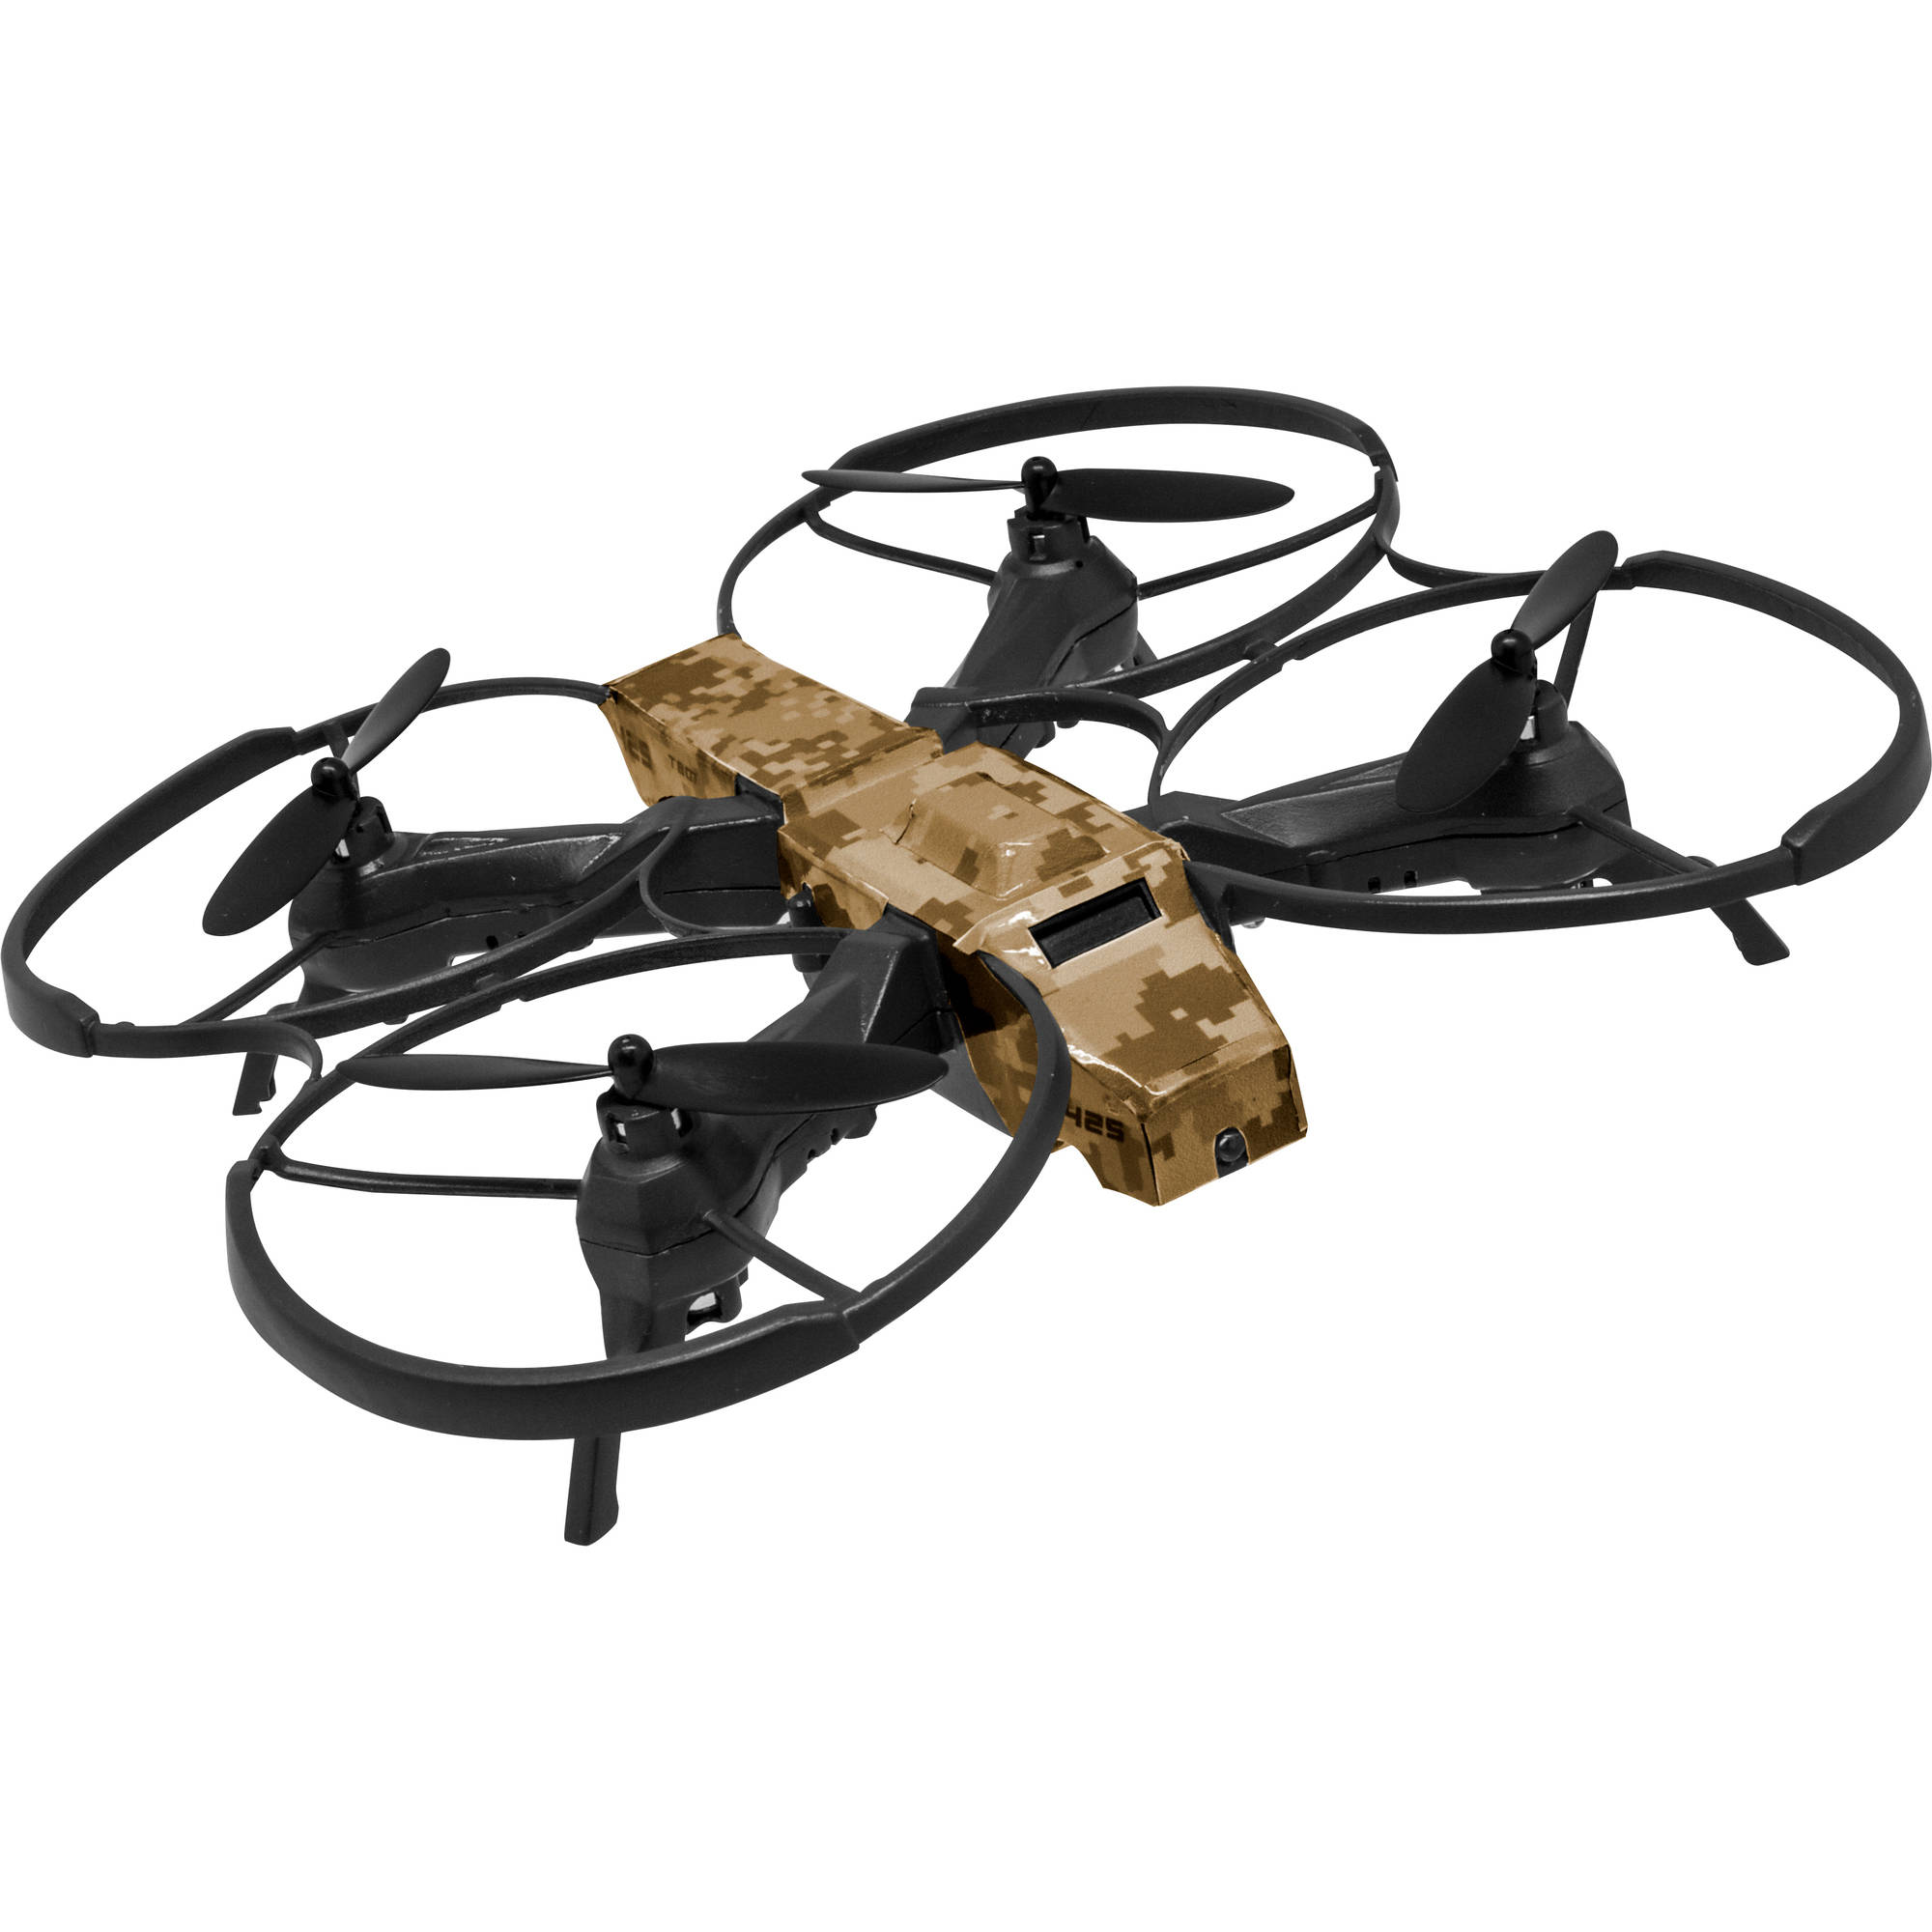 Call of Duty Battle Drone